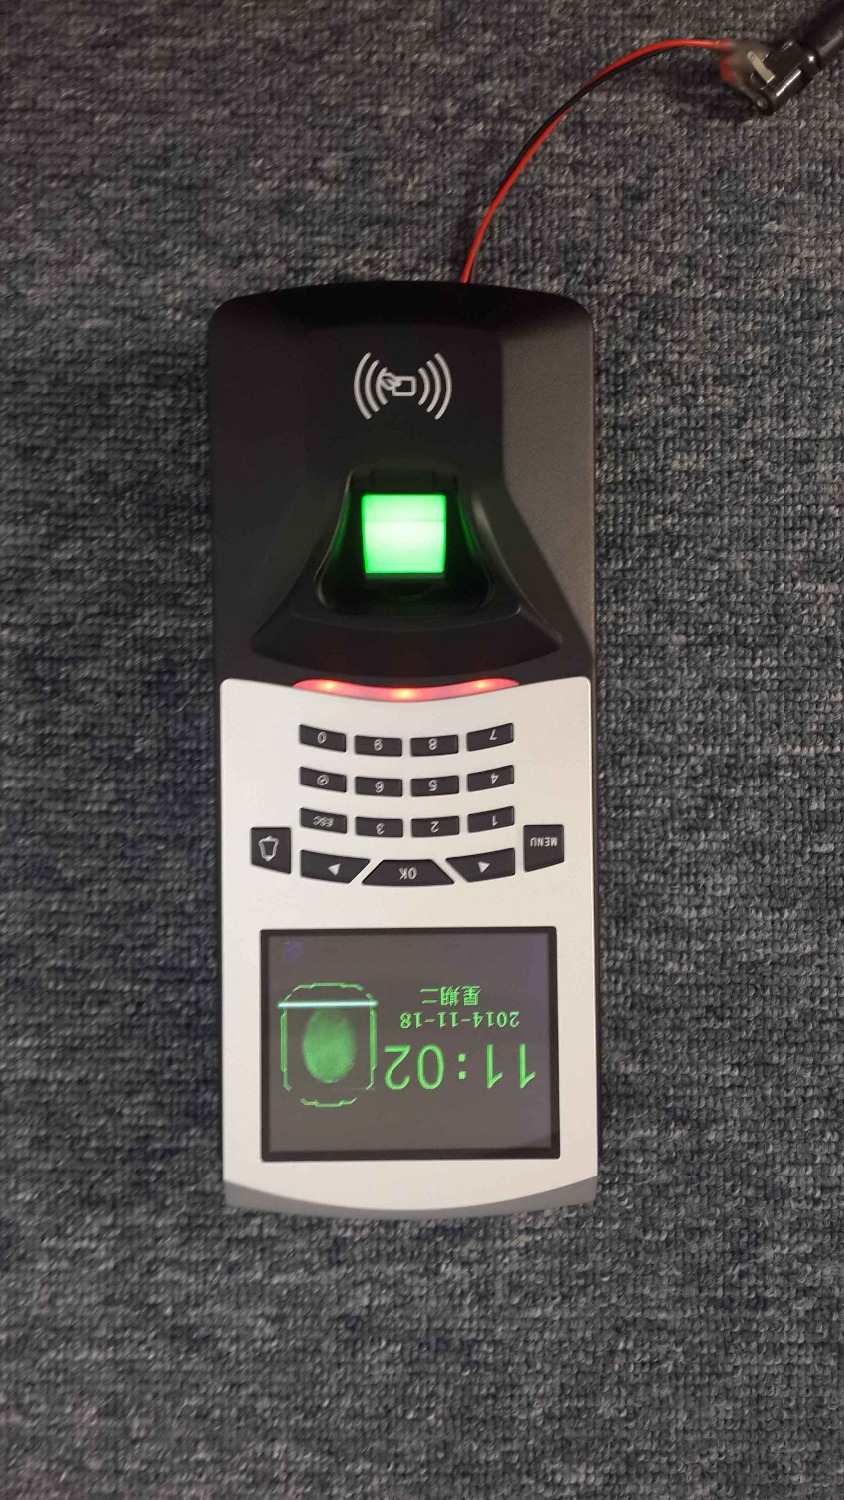 F807 Biometric Fingerprint Access Control Fingerprint Attendance Keypad Access Controller standalone door access control system linux system tcp ip biometric face and fingerprint door access controller standalone facial recognition access control system